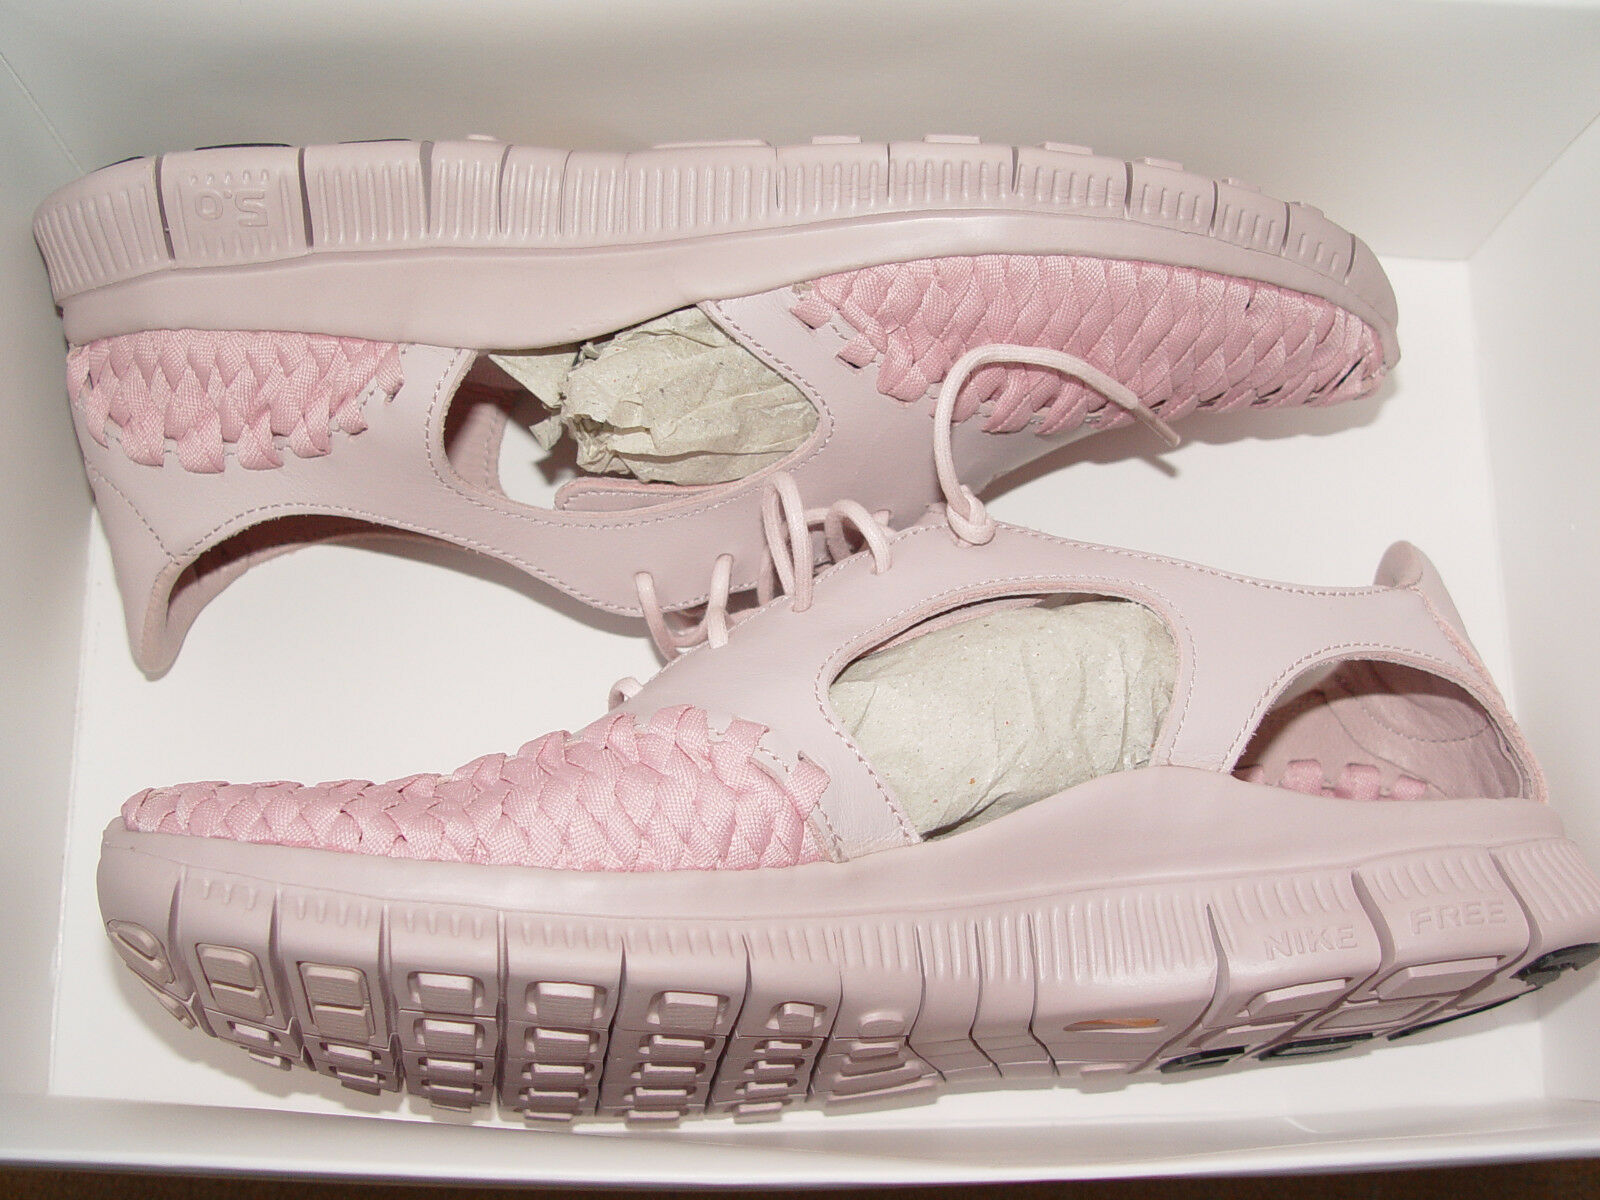 NEW NIKE WMNS FREE INNEVA SP 813069-660 SIZE 44. AIR MAX ONLY PAIR IN THIS SIZE